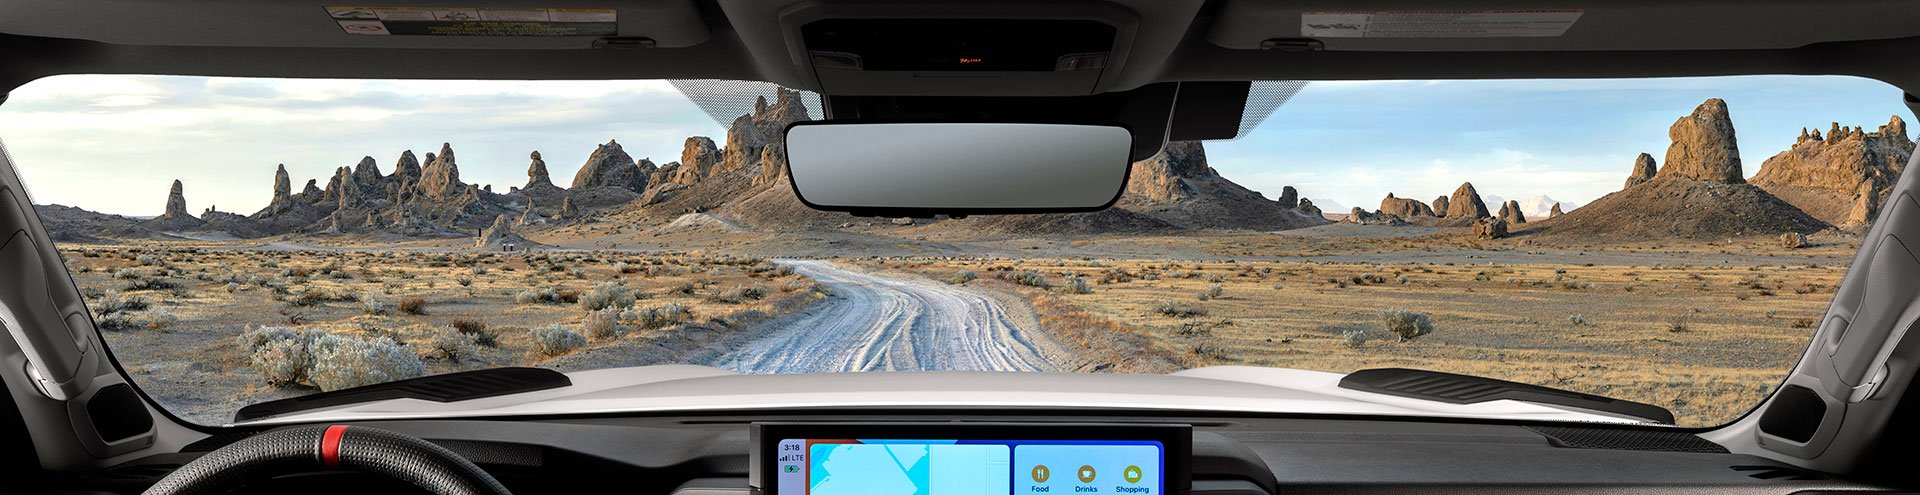 Toyota Teases 2022 Tundra Dashboard and View from the Cabin